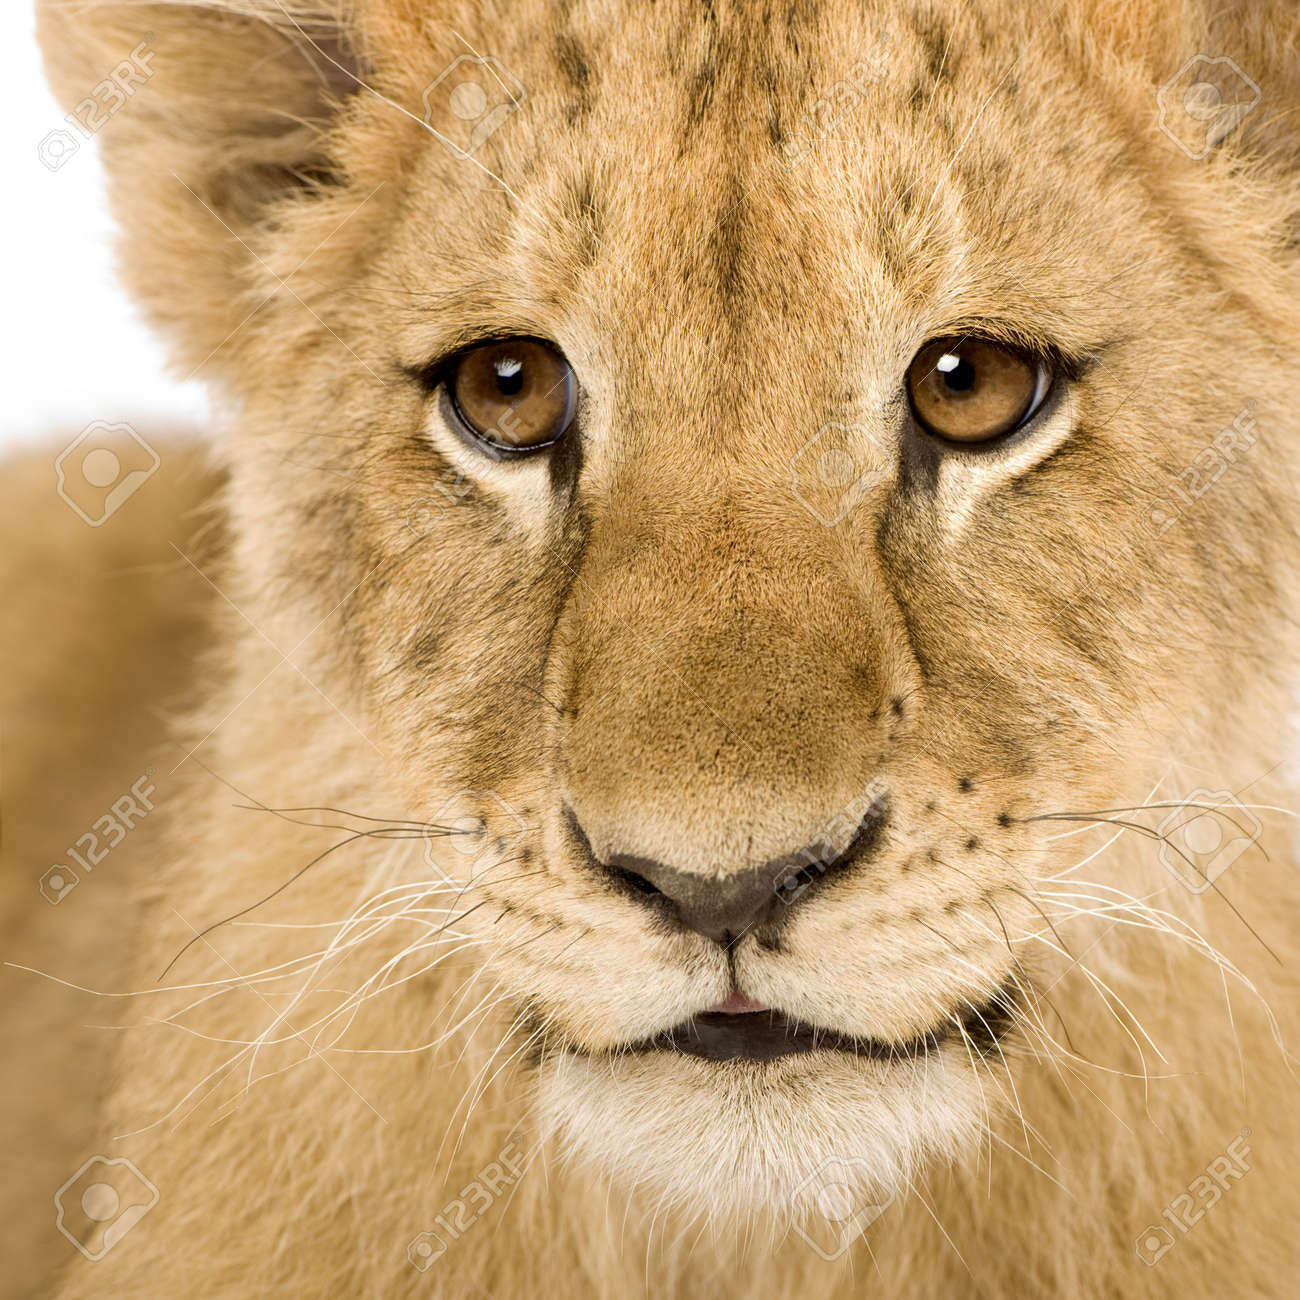 Lion Cub (4 months) in front of a white background Stock Photo - 3358022